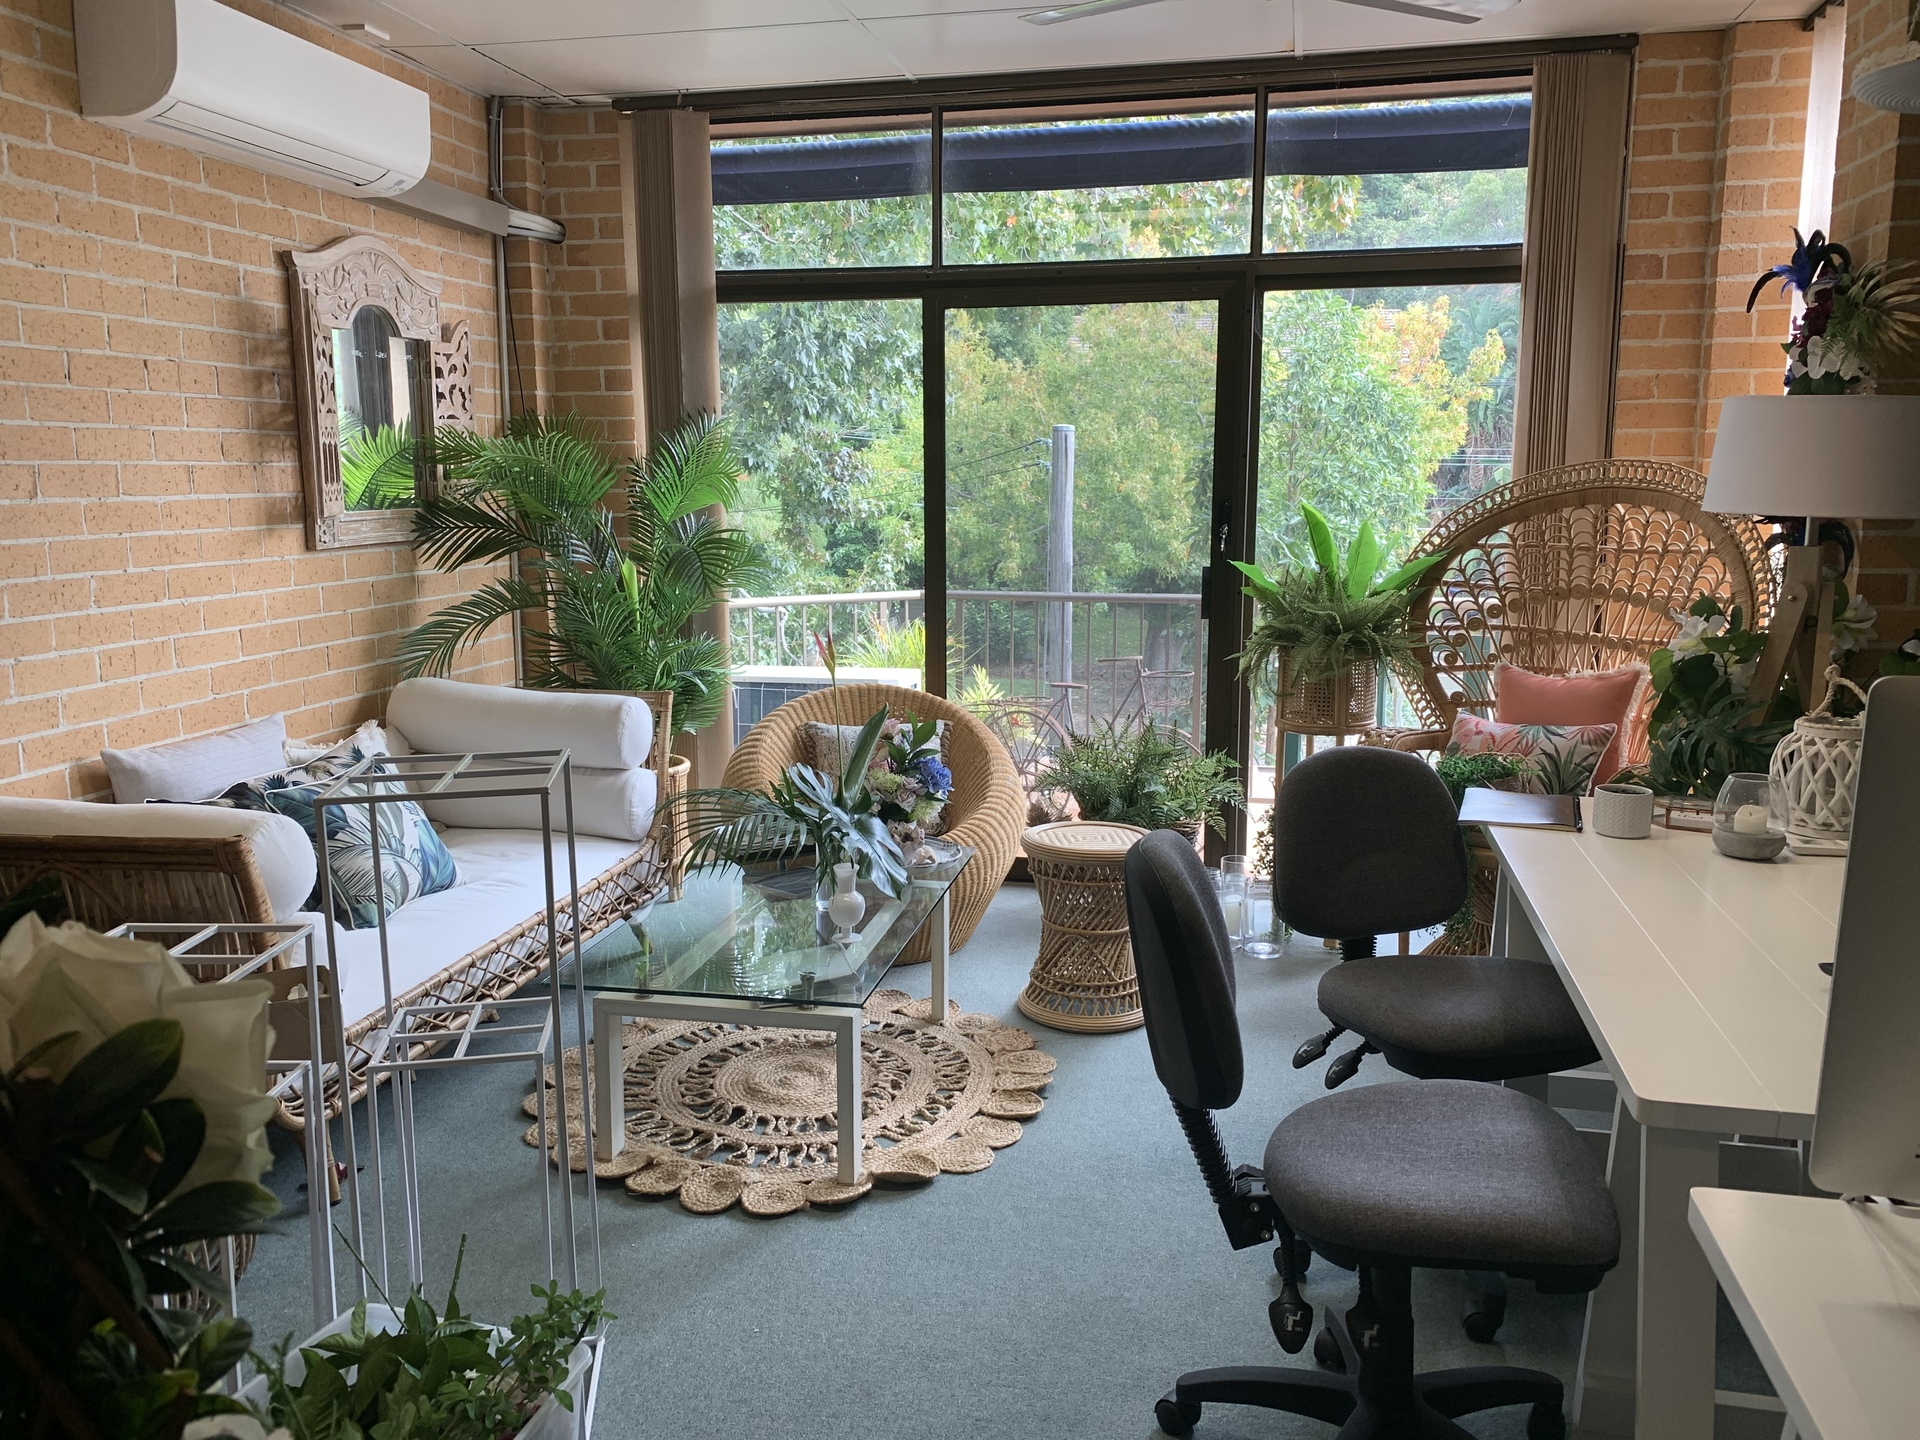 GENEROUS INCENTIVES OFFERED FOR THE RIGHT TENANT!